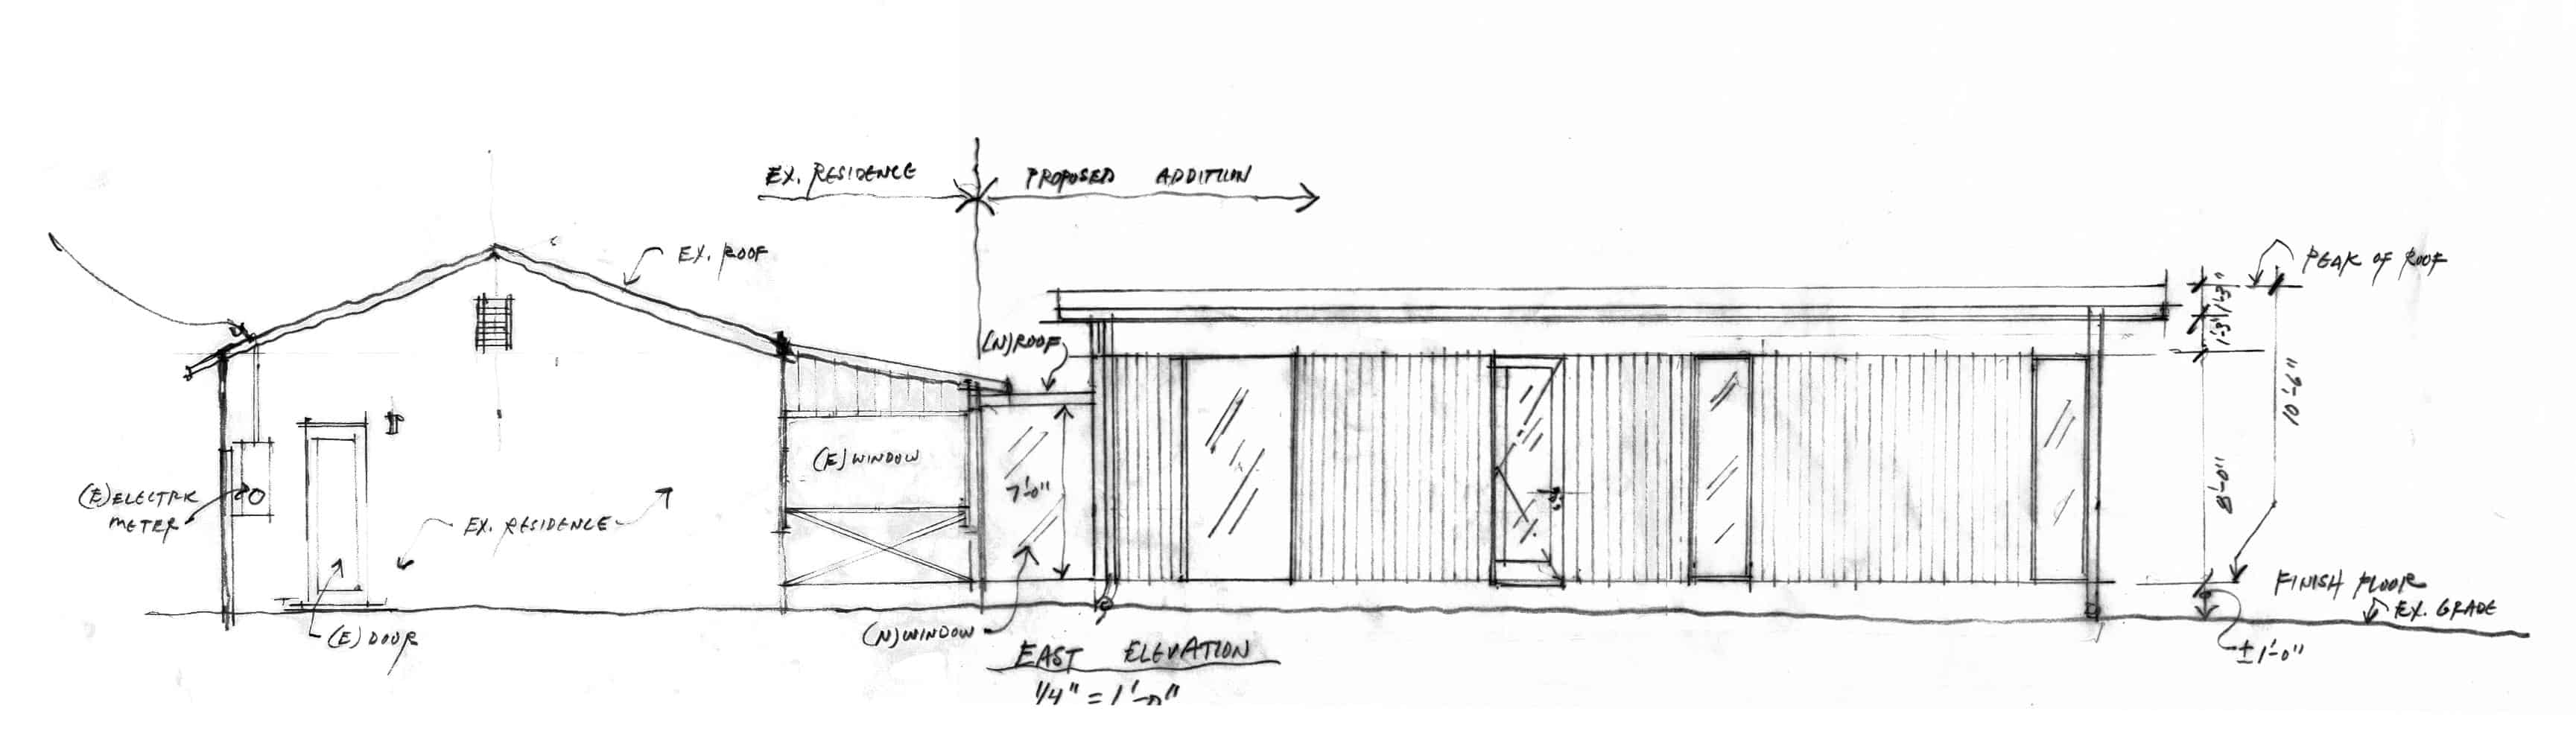 0609_CL20_Sketches_Elevation(5)